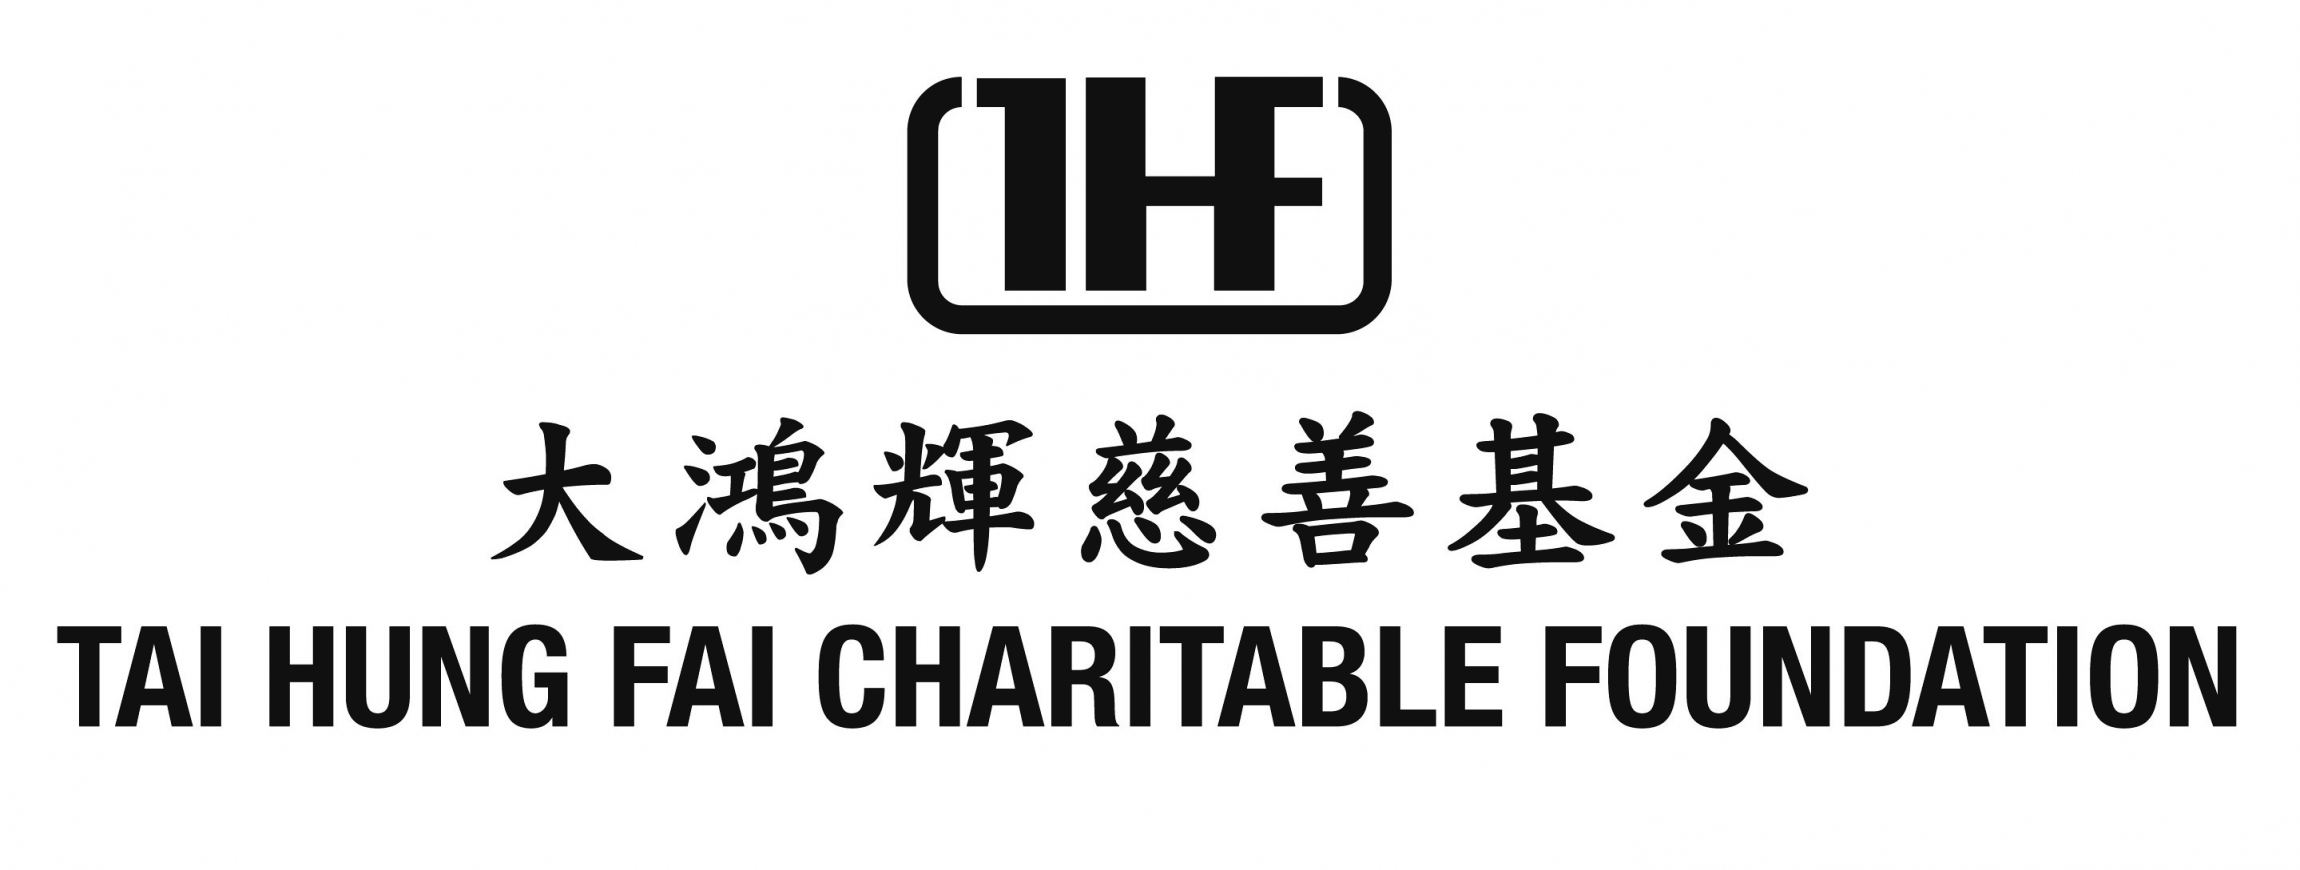 THF Charitable Foundation logo_C_outline